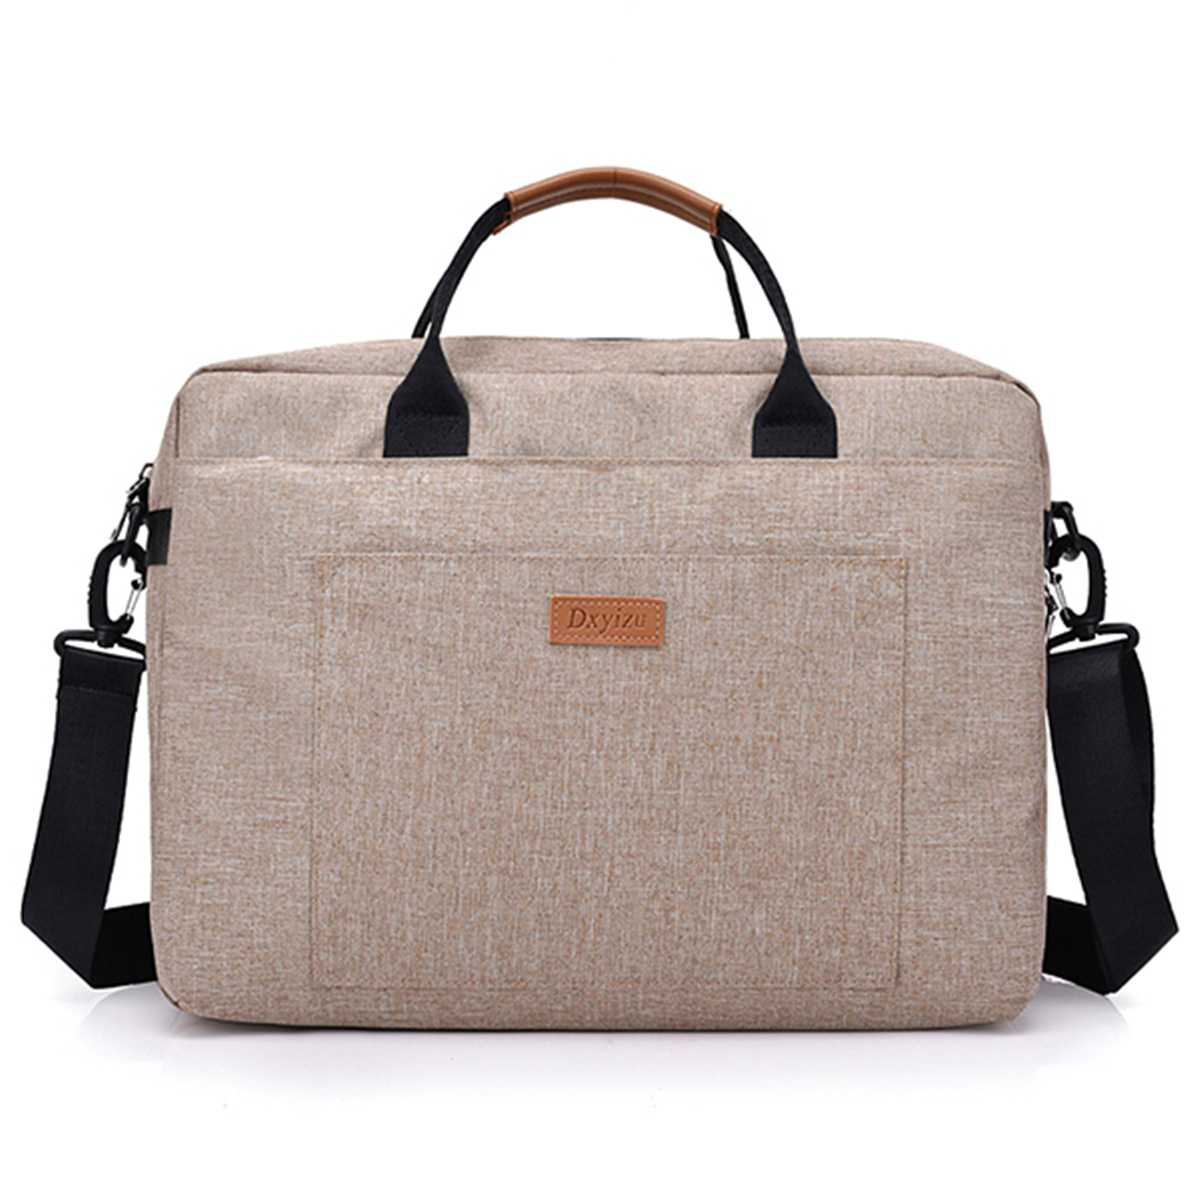 Casual Business Computer Bag Women Men Canvas Briefcase 16 Inch Laptop Shoulder Bag For Female Male Handbag Travel Large Tote